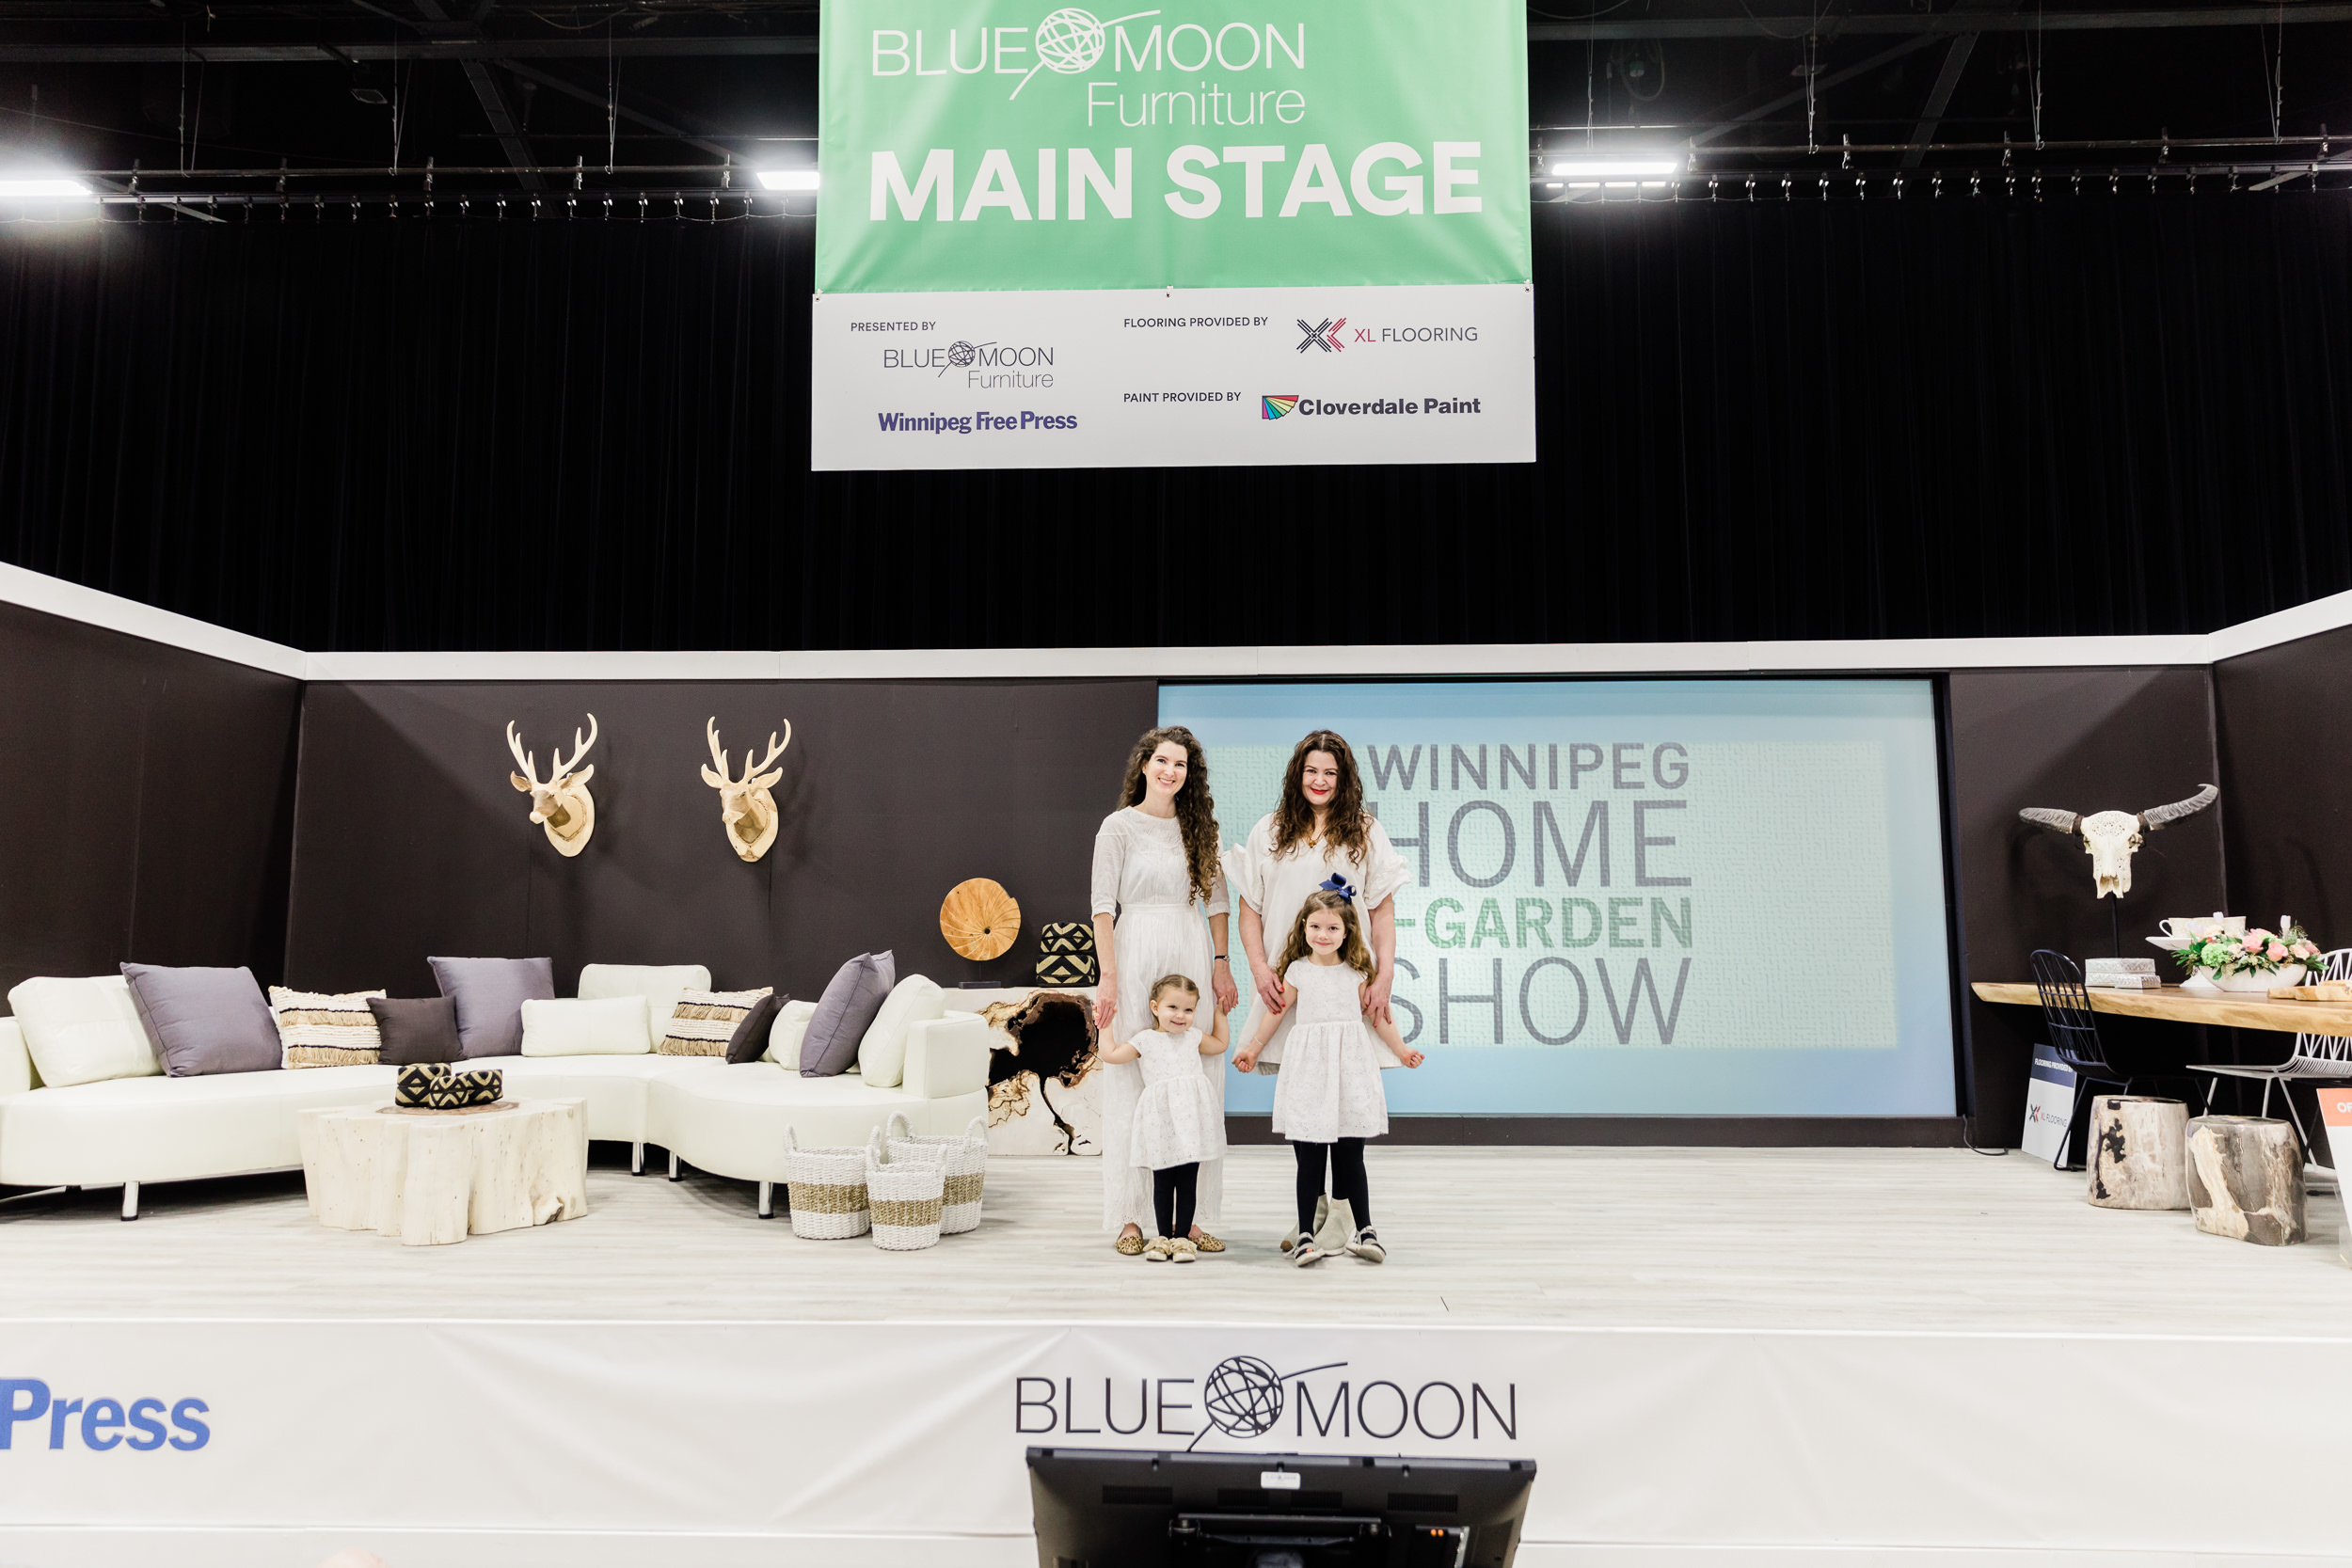 Main-stage-furniture-at-the-winnipeg-home-and-garden-show